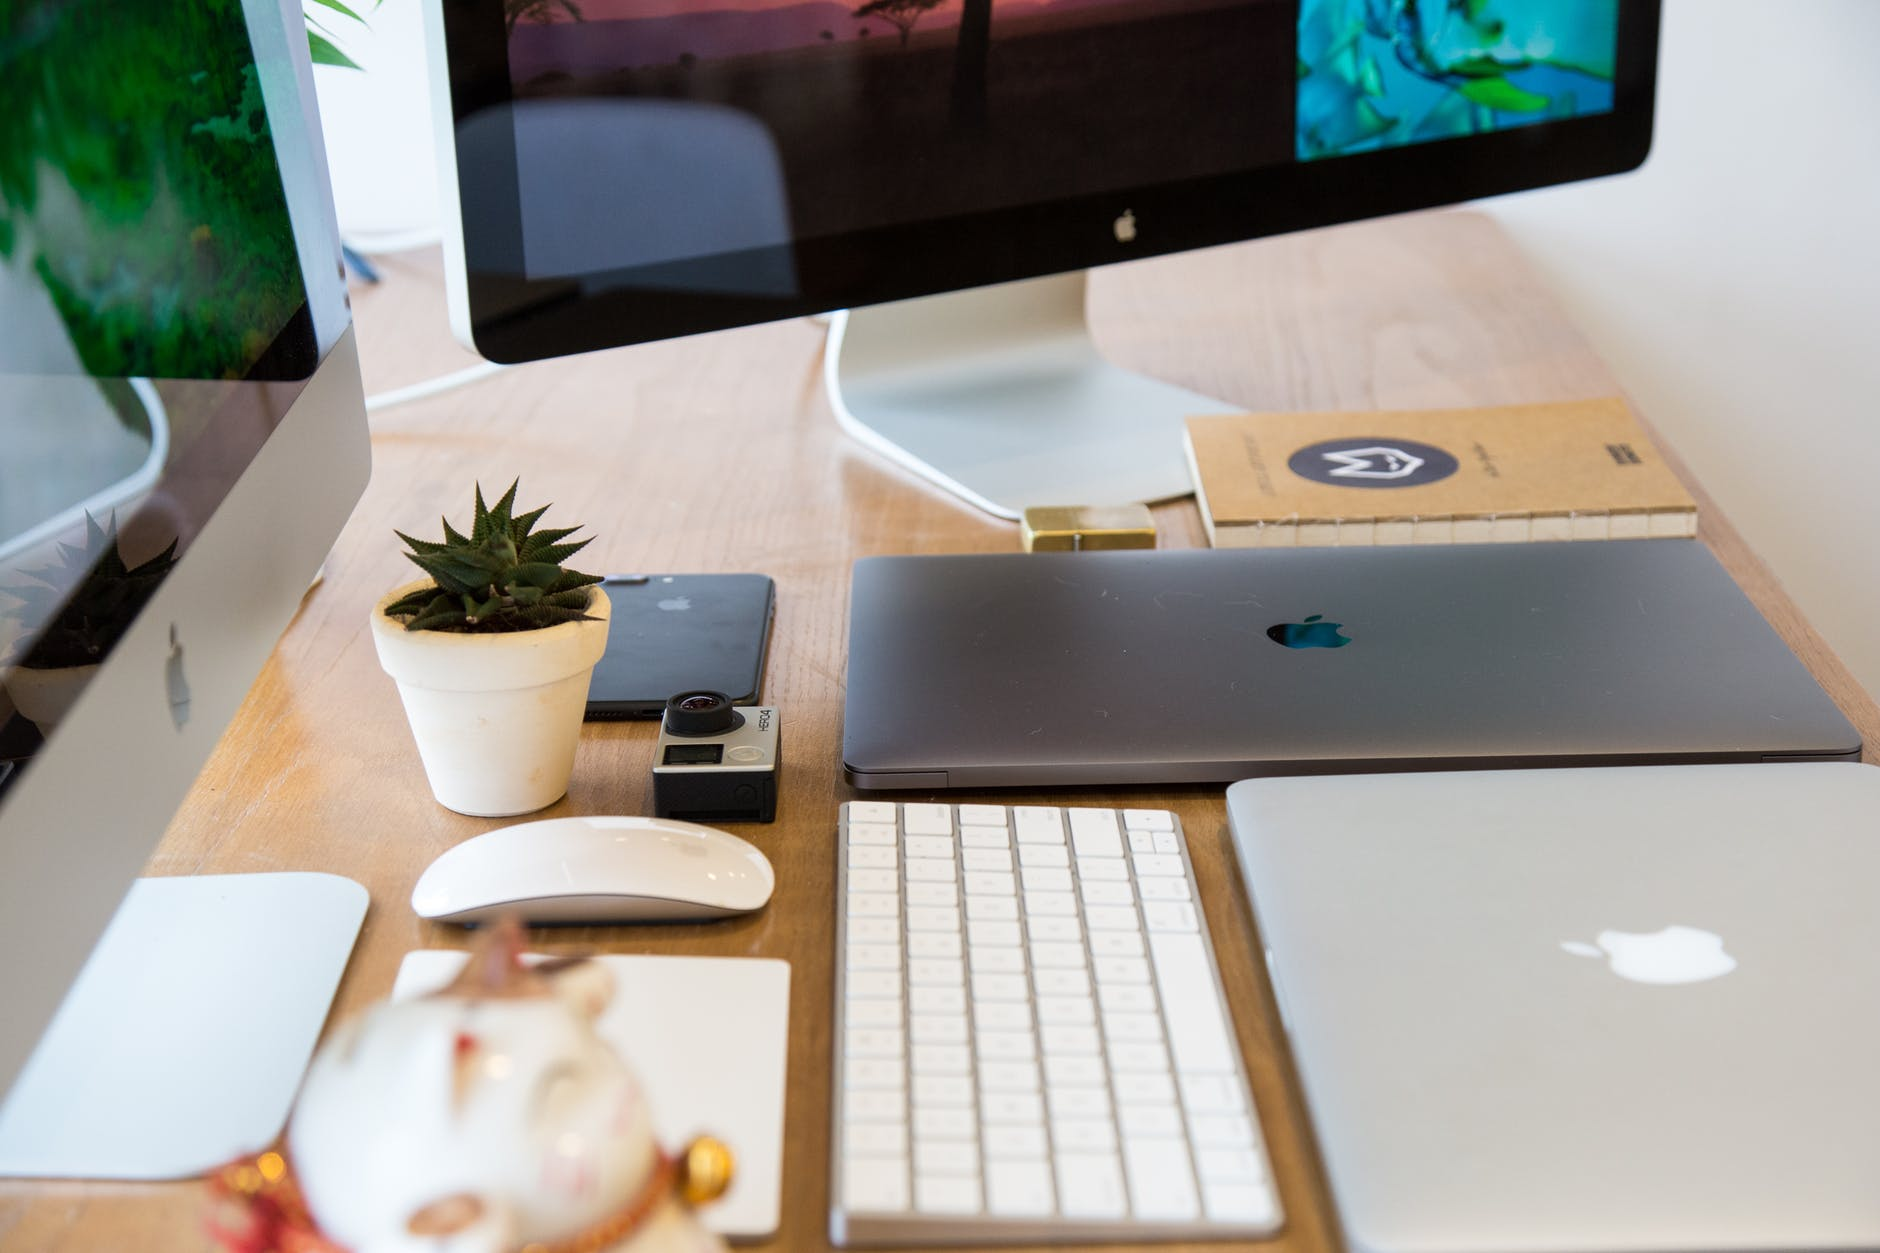 Improving Work Productivity With An Organized Workspace